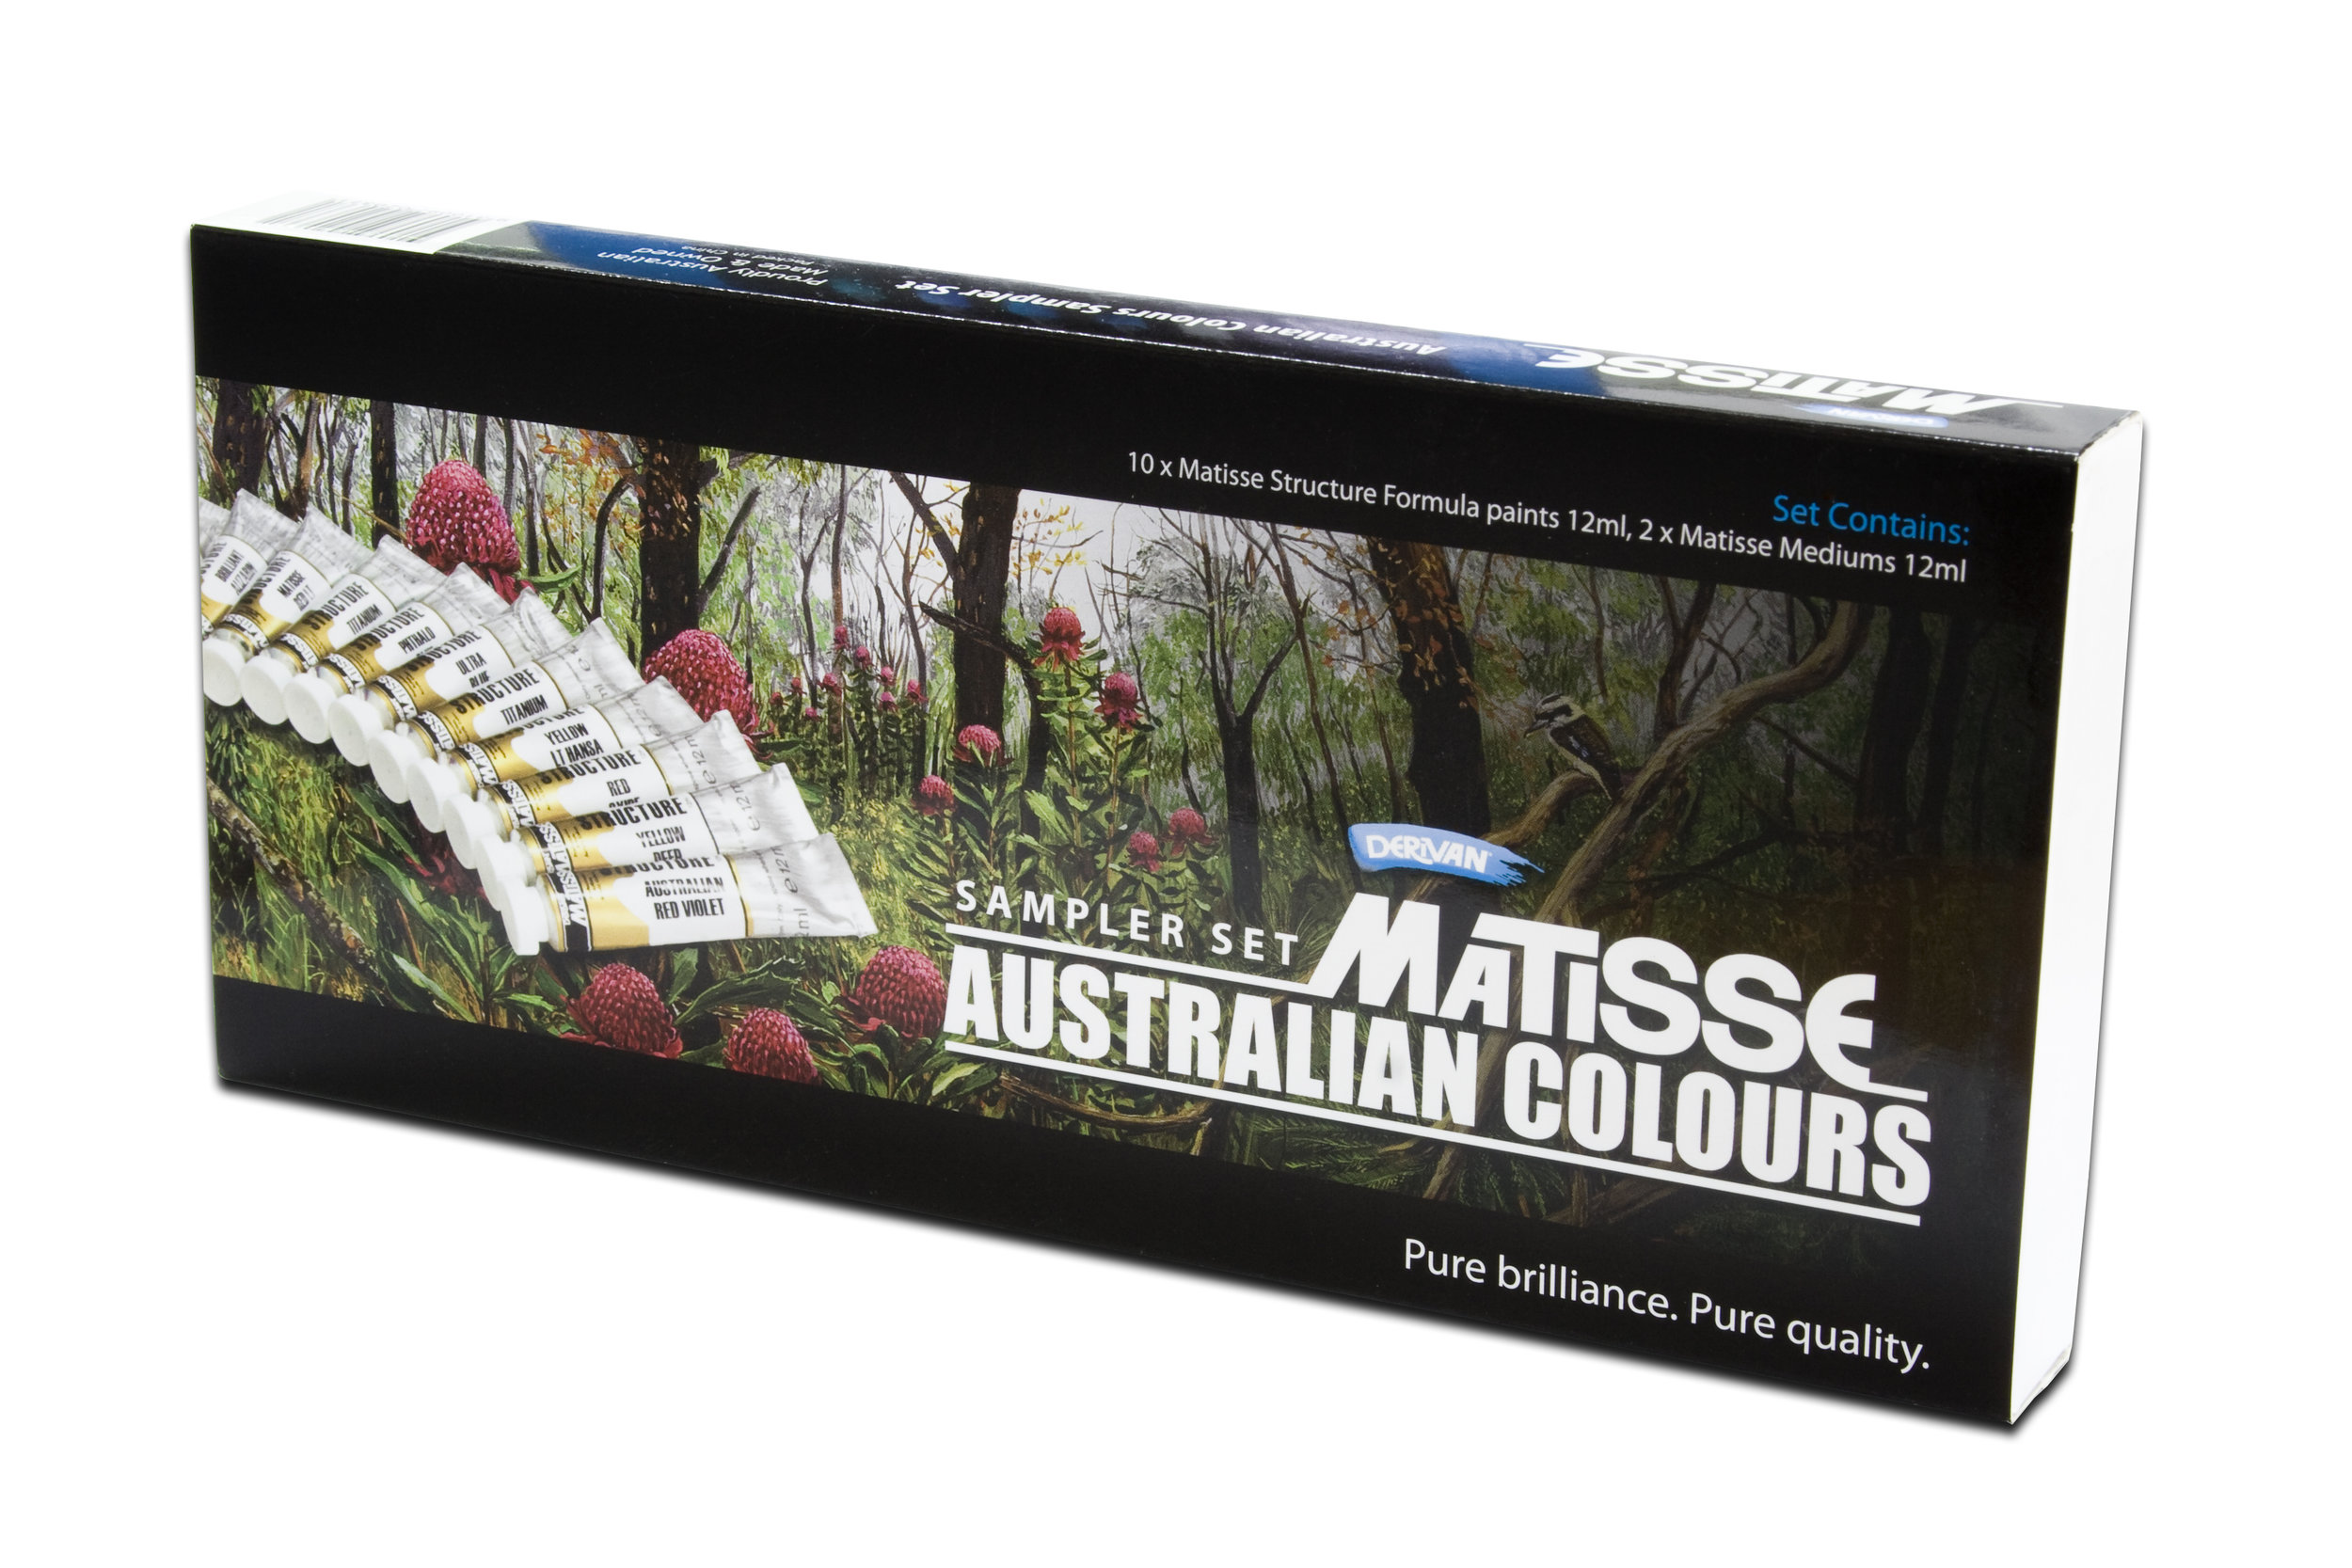 MATISSE AUSTRALIAN COLOURS SAMPLER SET - STRUCTURE FORMULA